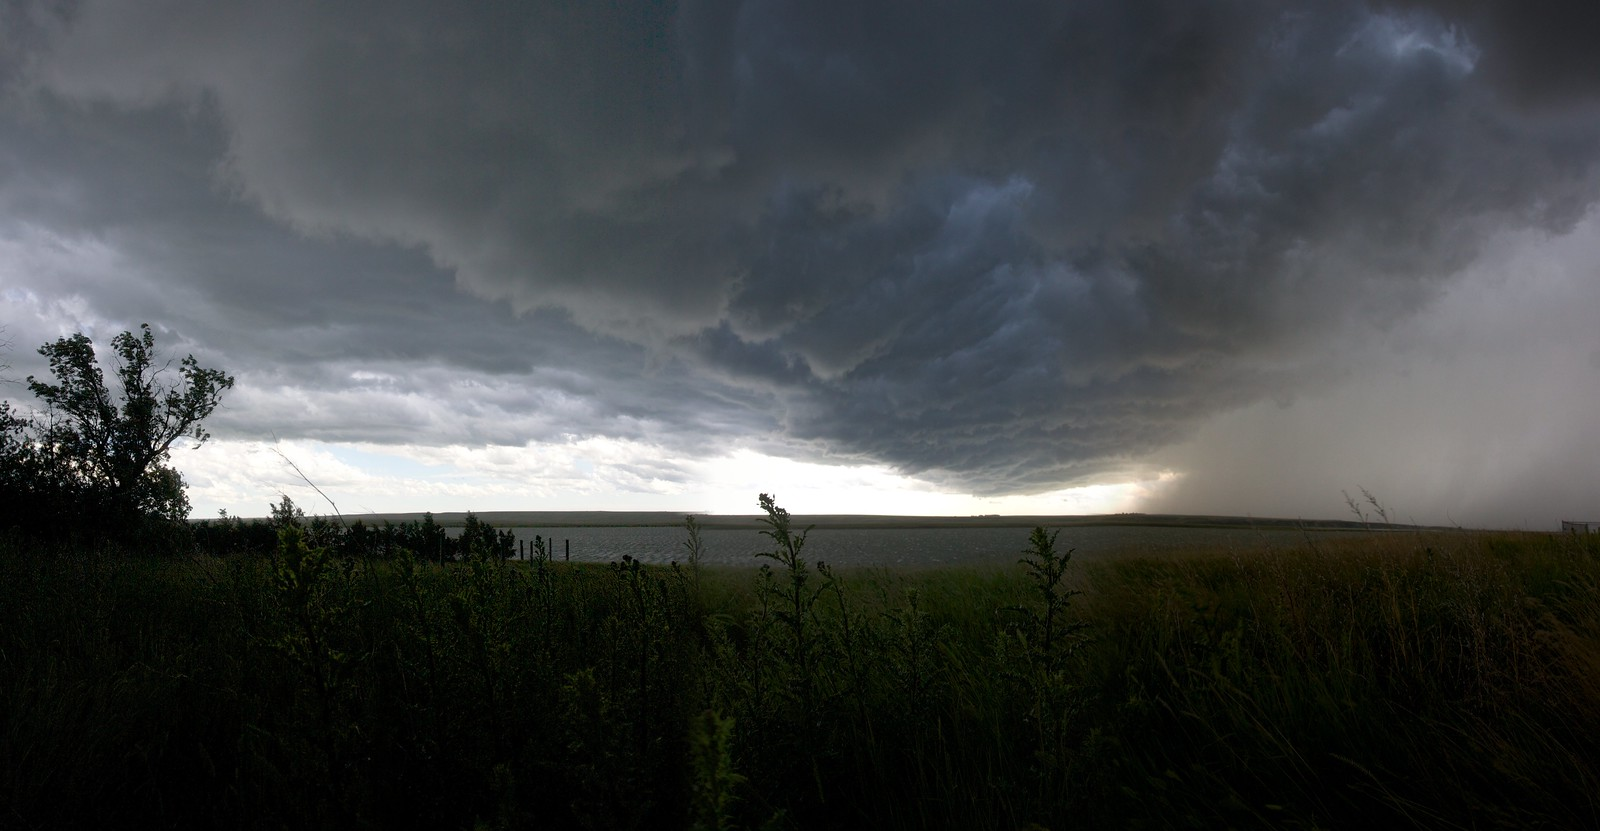 Approaching Thunder- Unlike many other parts of our Nation, where skyscape views are obstructed by trees, mountains, and higher-density land uses, in the the Northern Prairie one can see whole storm fronts advancing | Medicine Lake NWR Storm